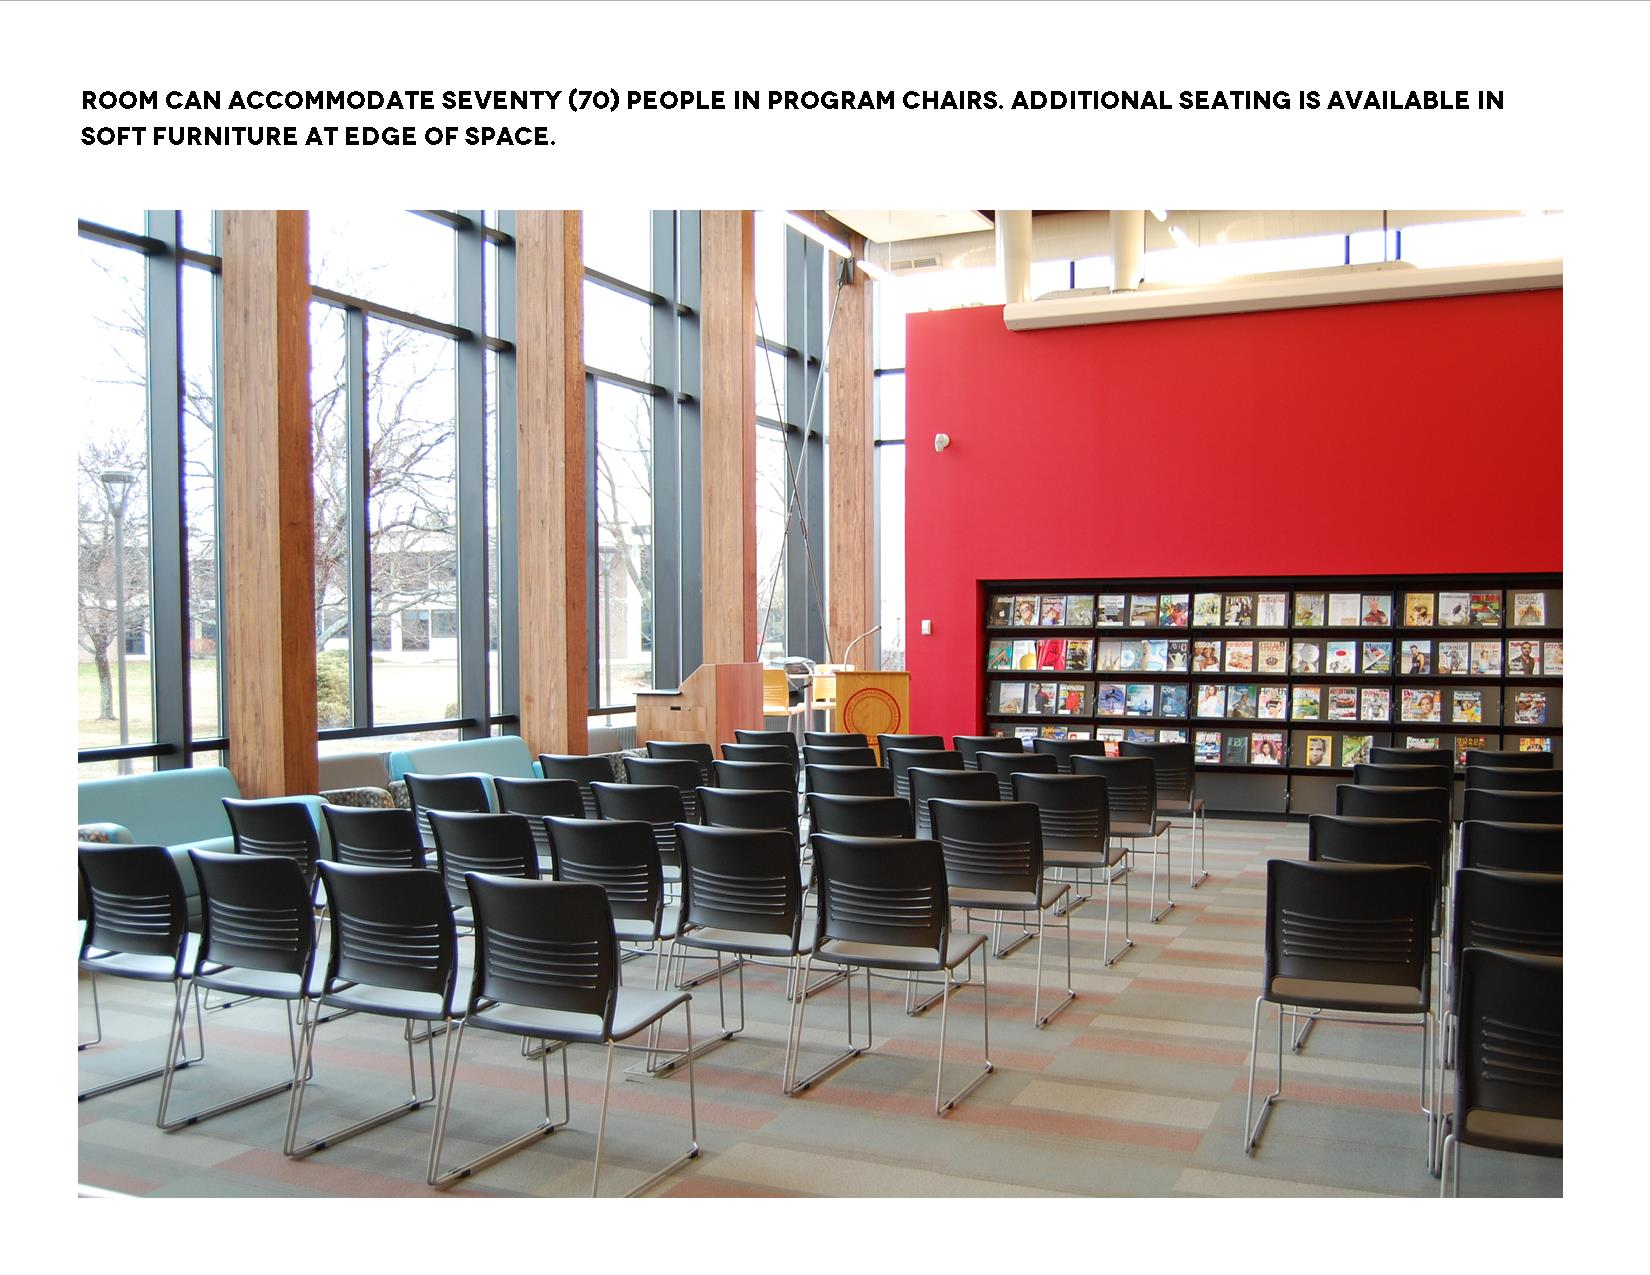 Room can accommodate 70 people in program chairs. Additional seating is available in soft furniture at edge of space.